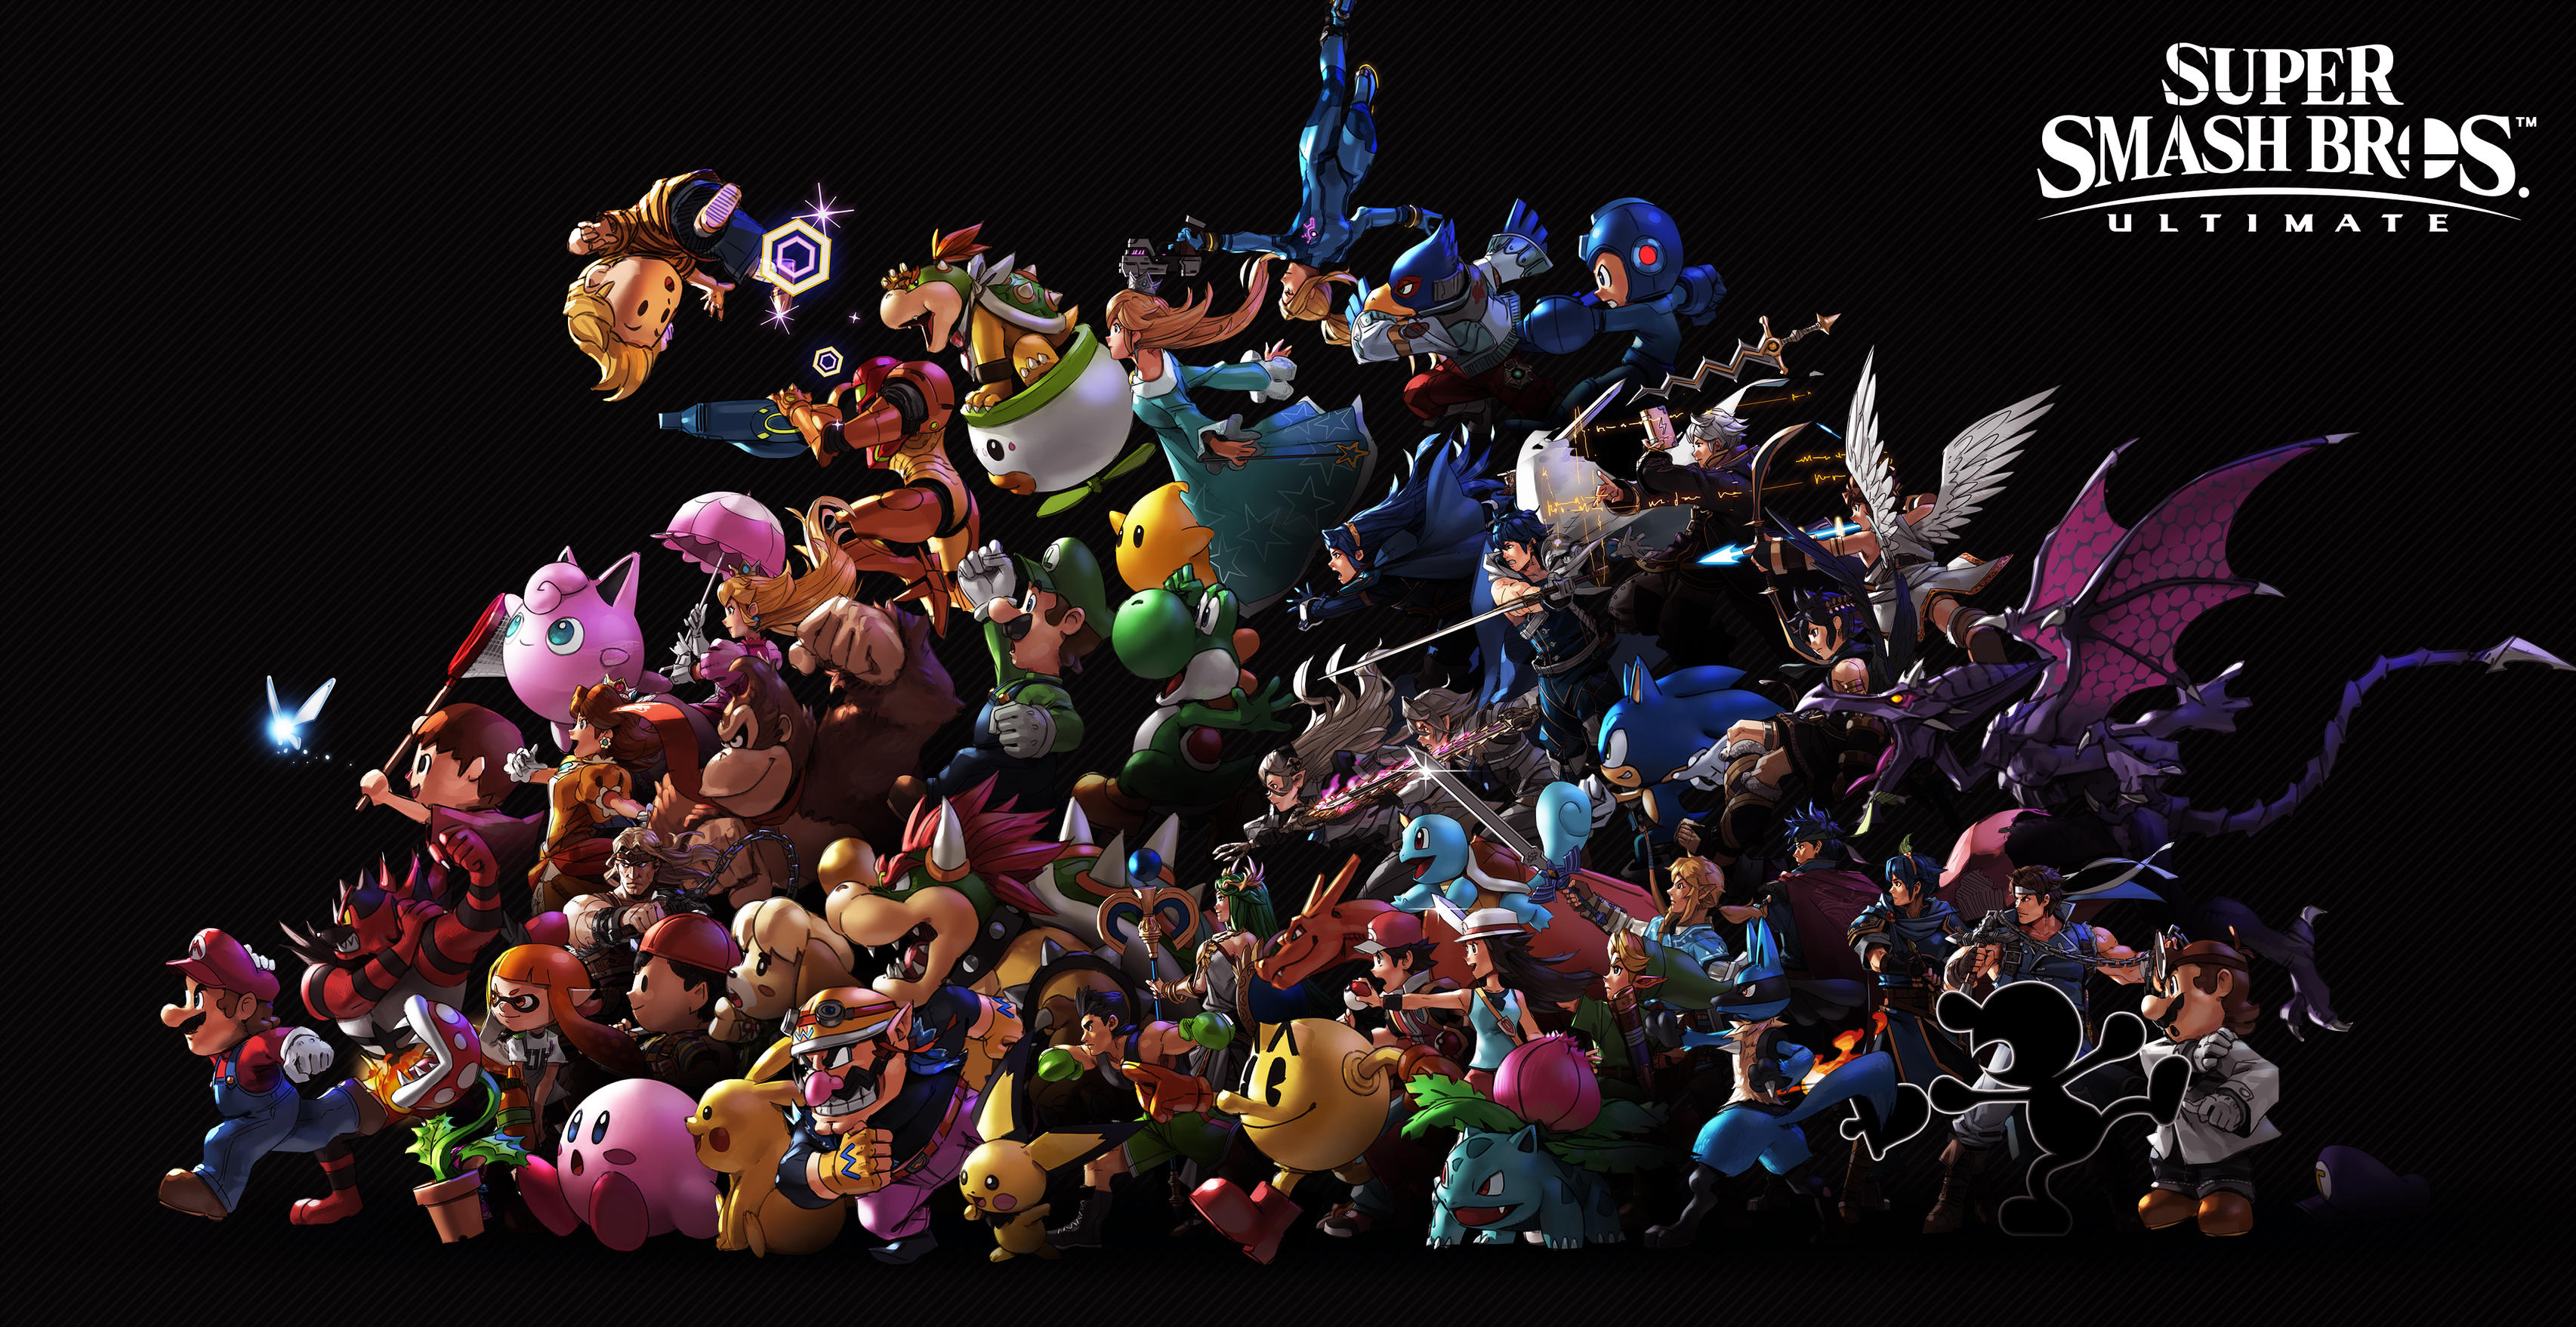 Free Download Super Smash Bros Ultimate Hd Wallpaper Background